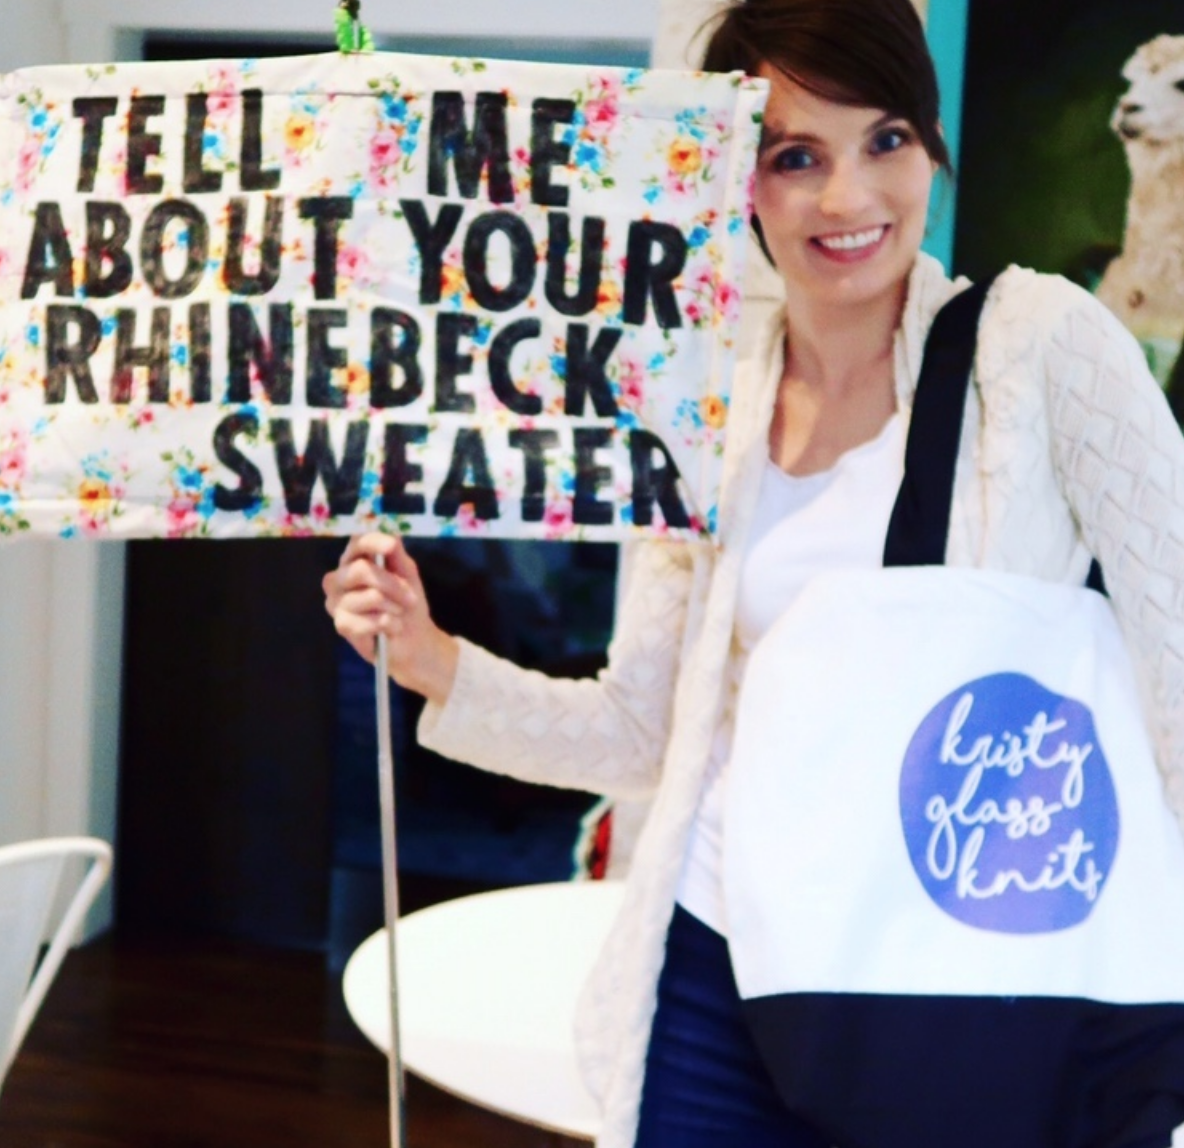 Tell me about your Rhinebeck Sweater! - Every year, knitters from around the world knit their best for NY Sheep & Wool, aka